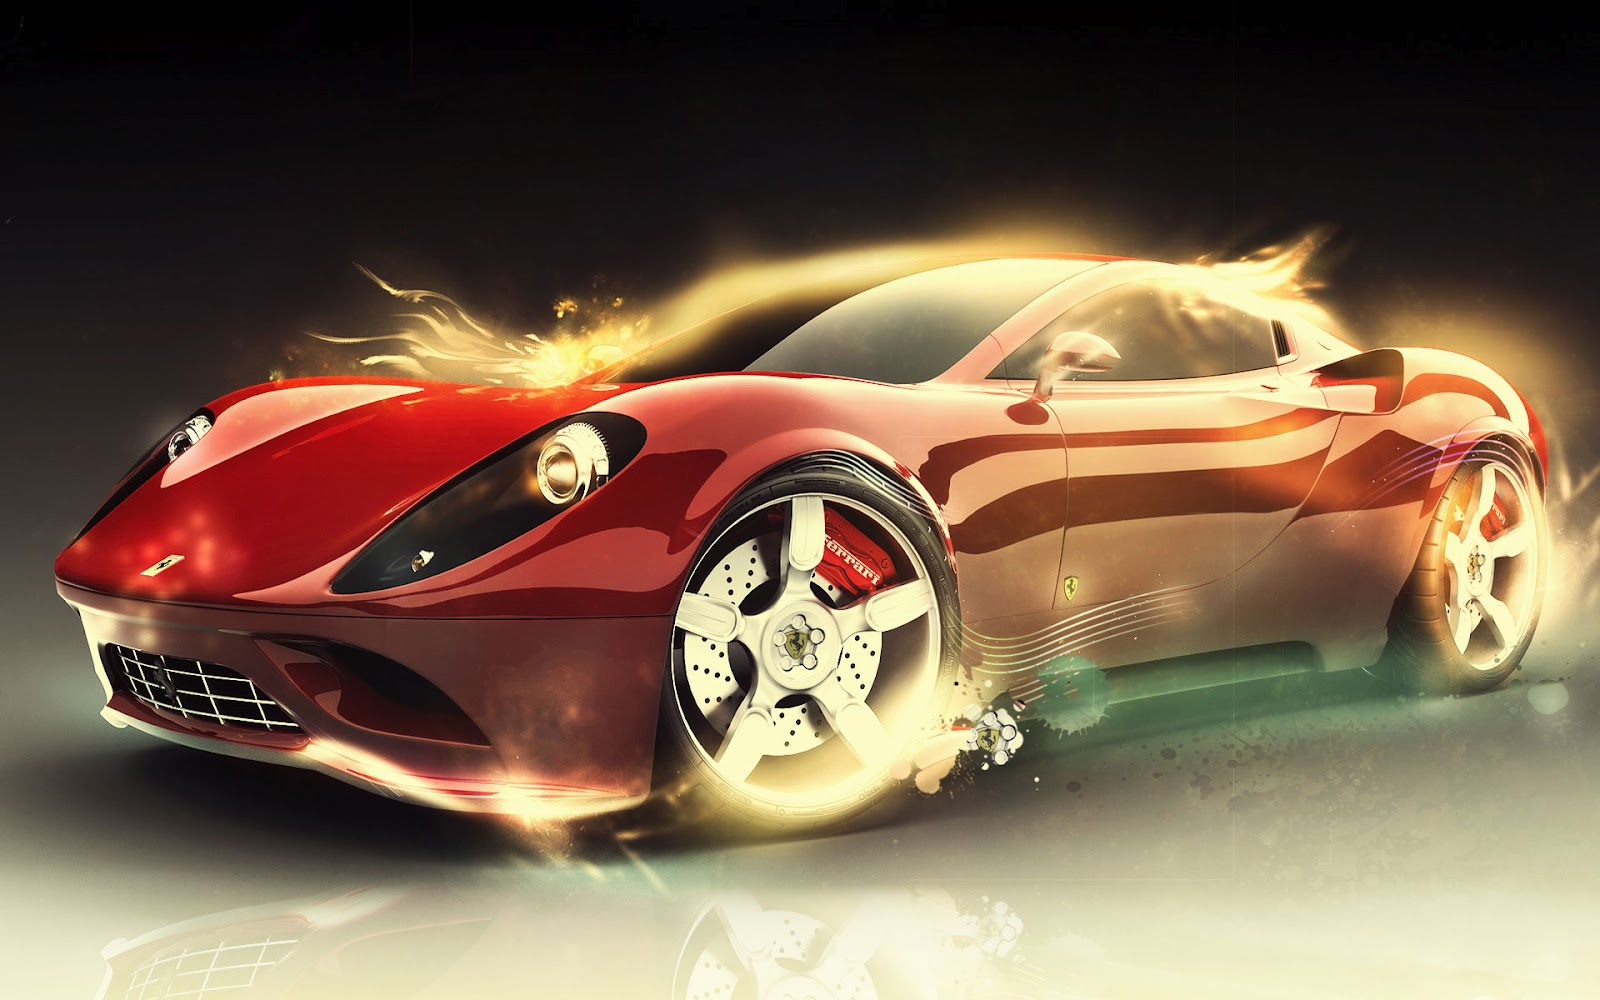 New Hd Best Car Background Editing Worlds